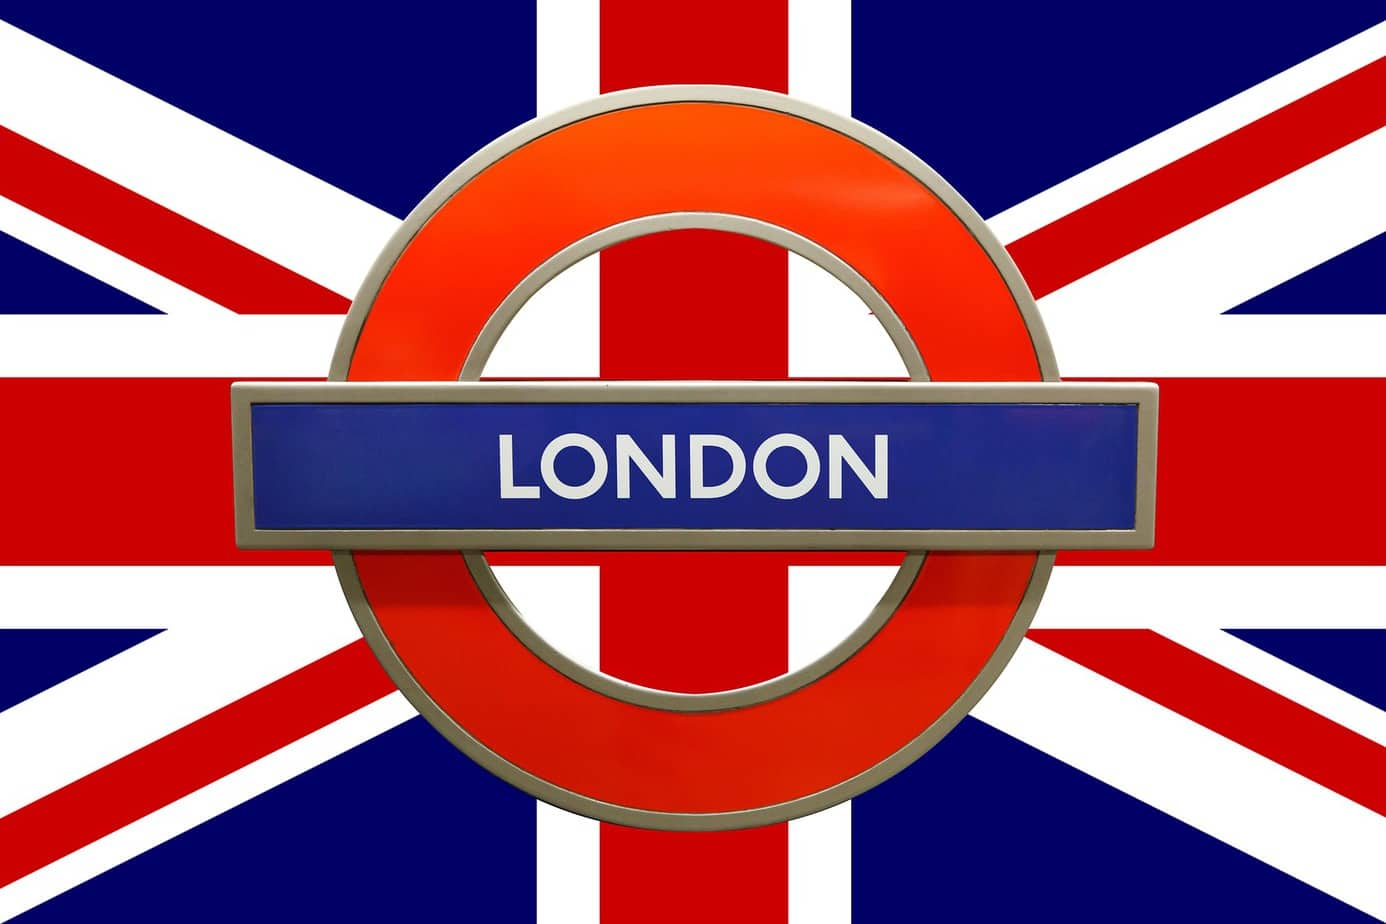 Are you planning a visit to London or even thinking about visiting? Then you have come to the right place!